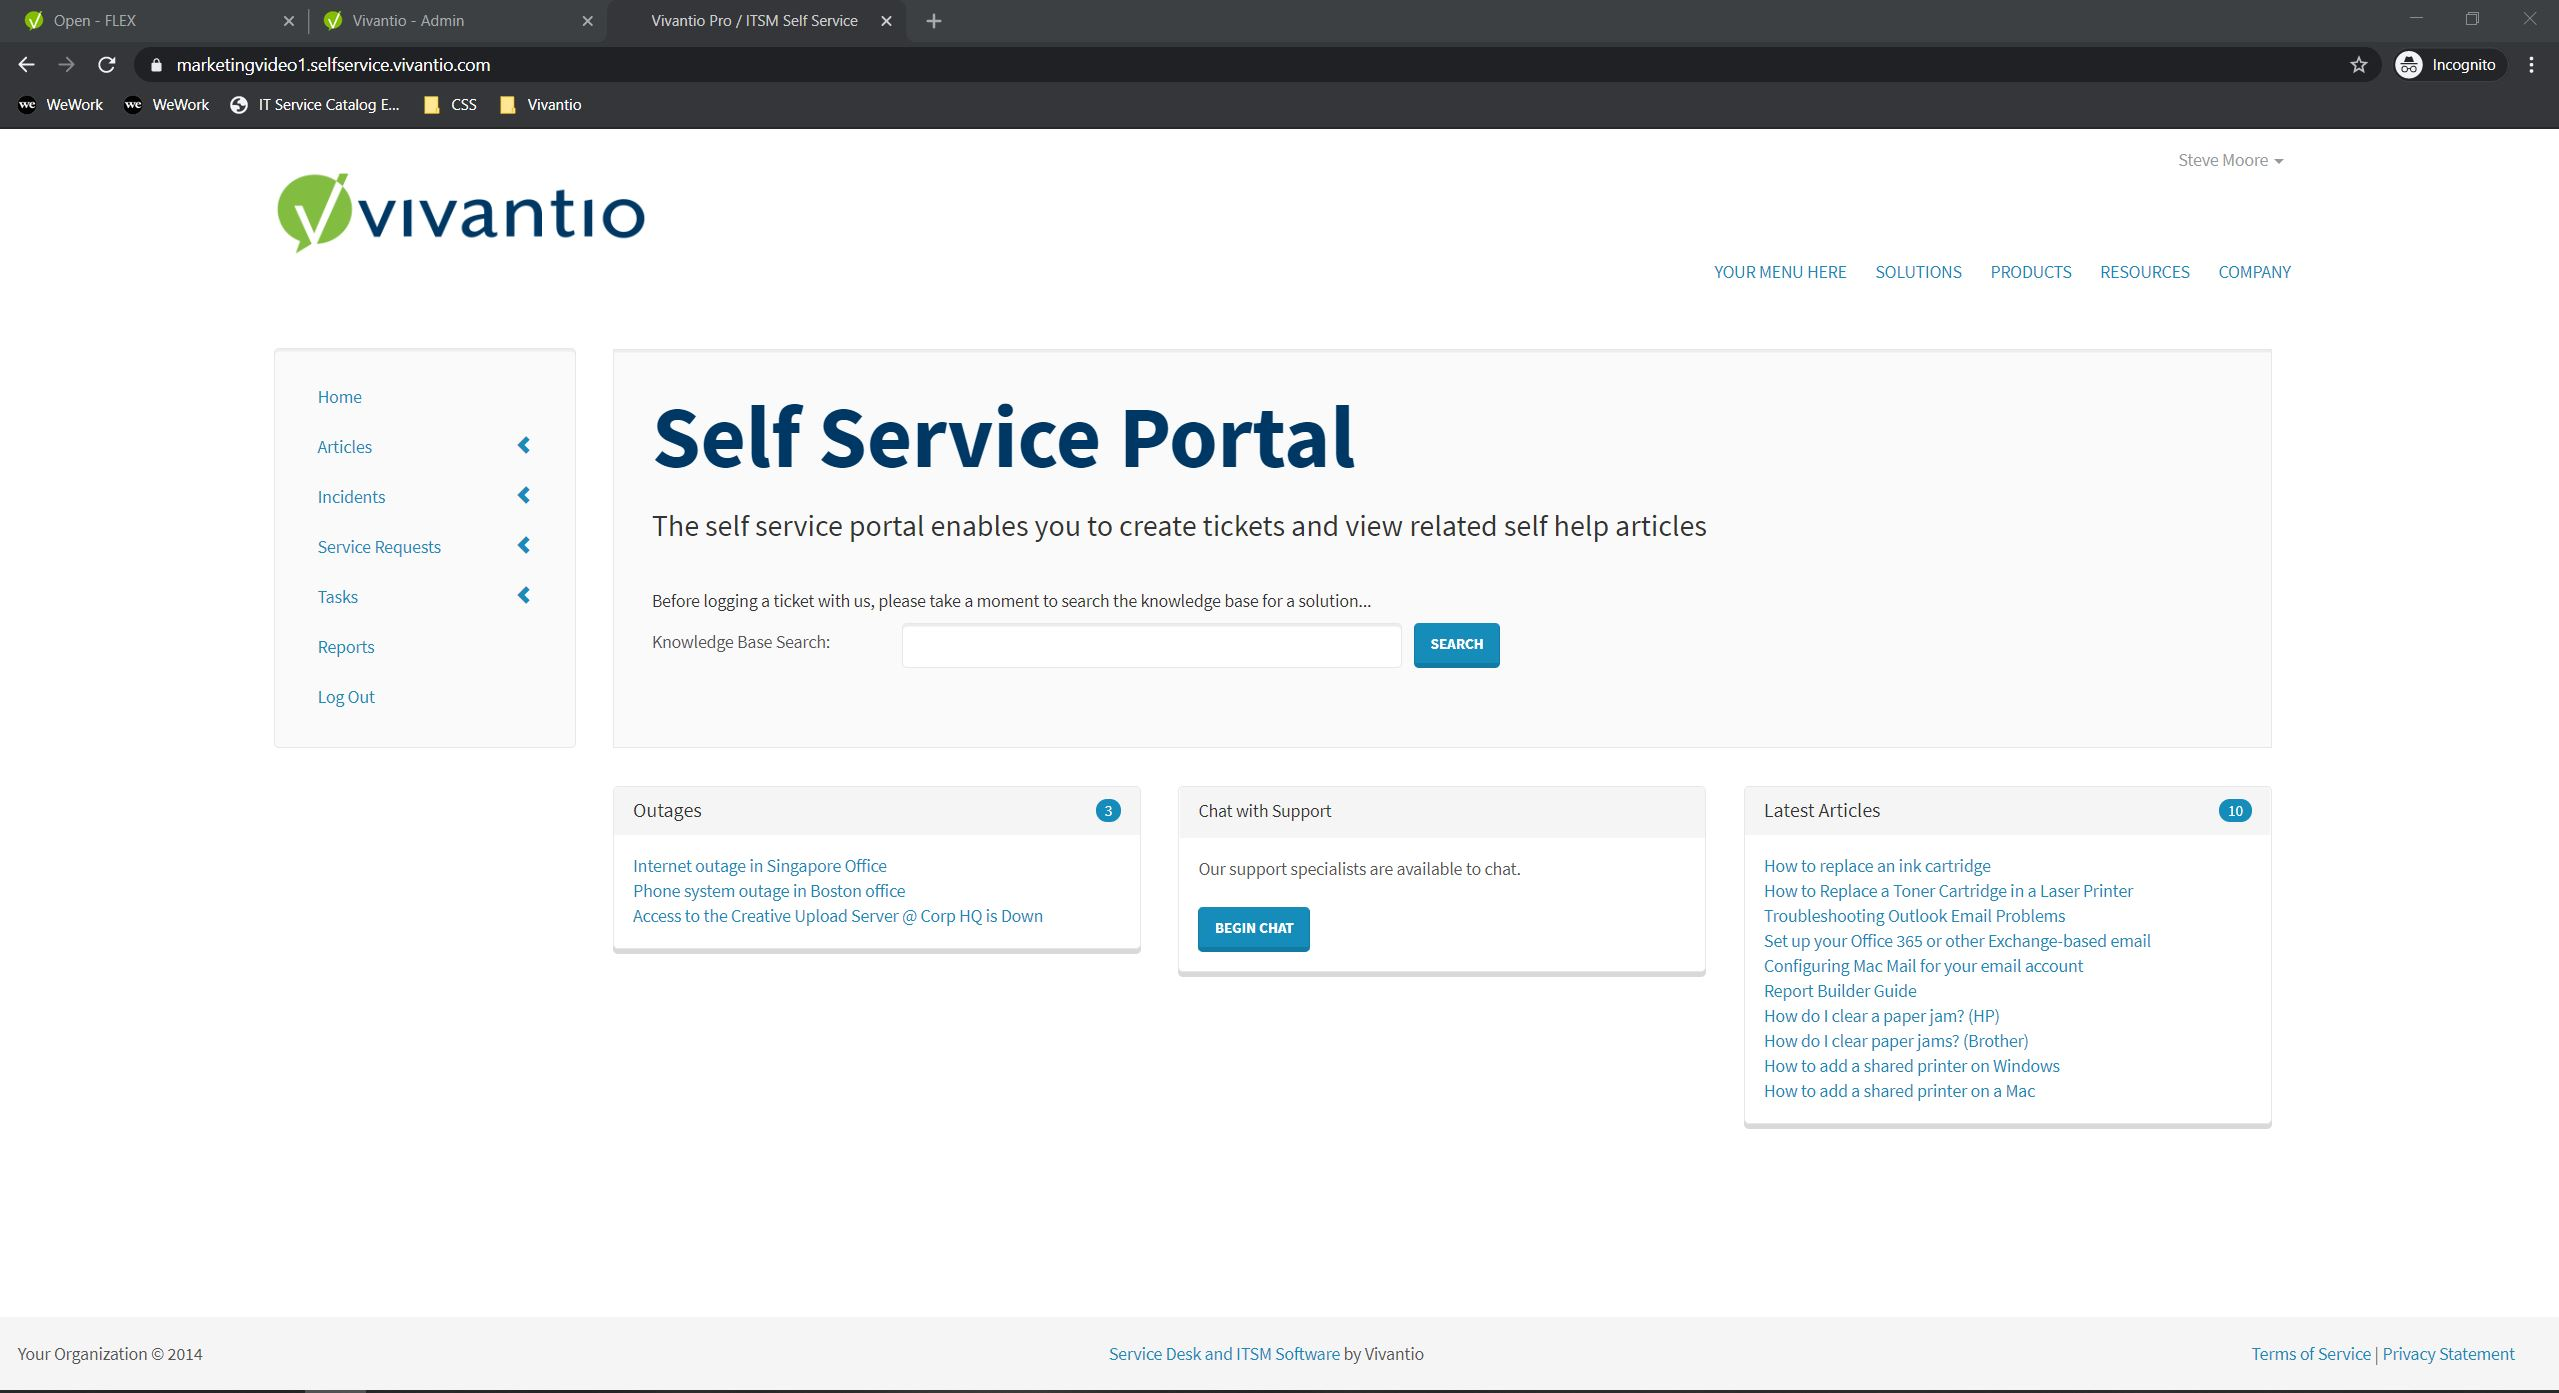 self service portal home page screen capture